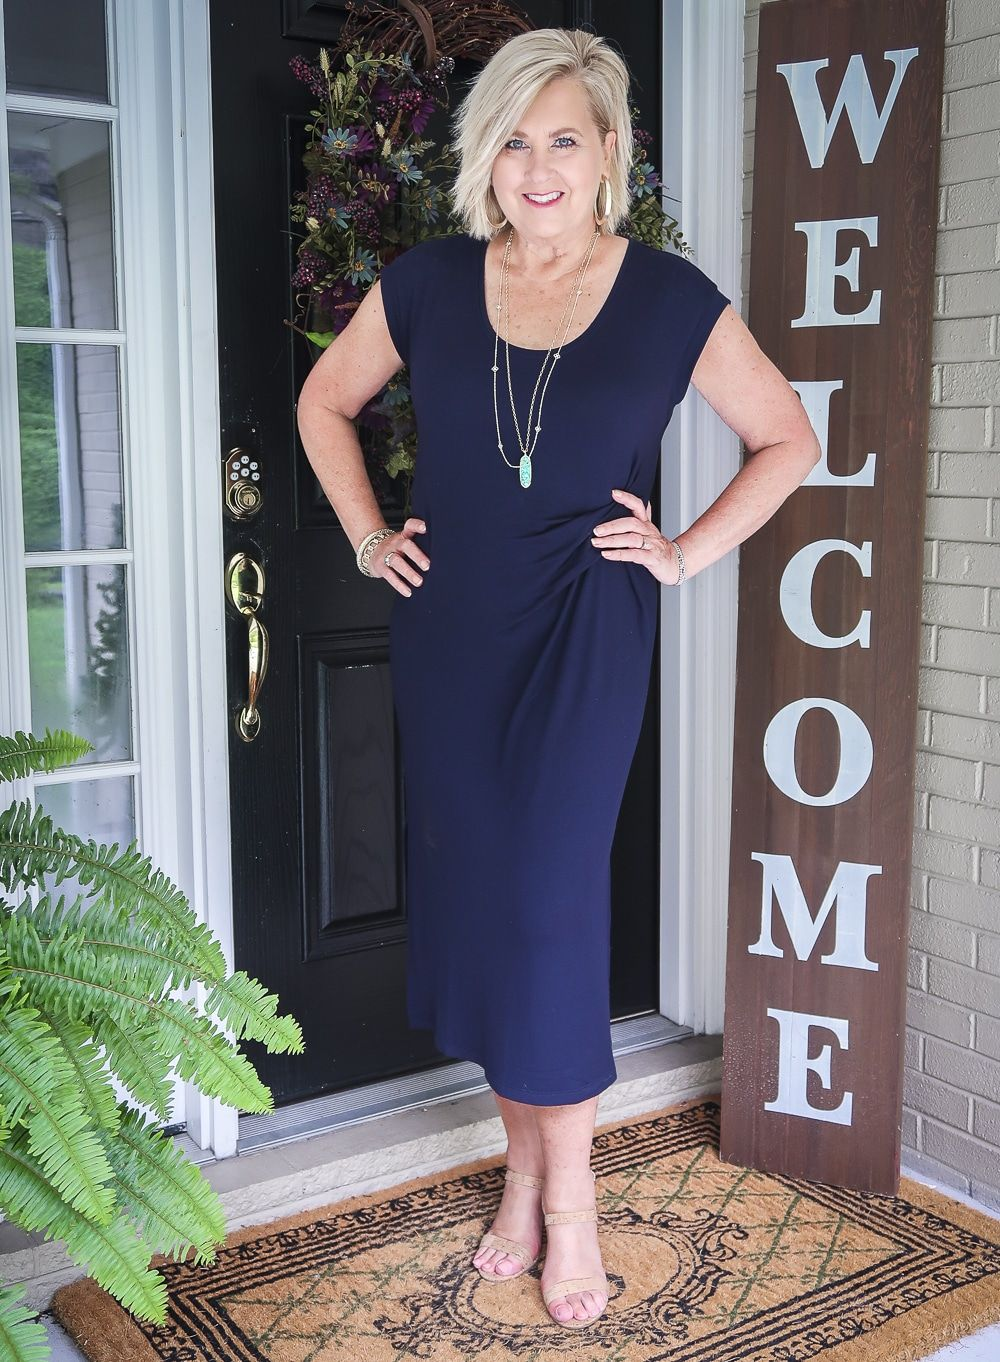 Picking Styles That Can Be Worn All Year Round 50 Is Not Old Dresses Women Over 50 Summer Dresses For Women Summer Outfits Women [ 1362 x 1000 Pixel ]